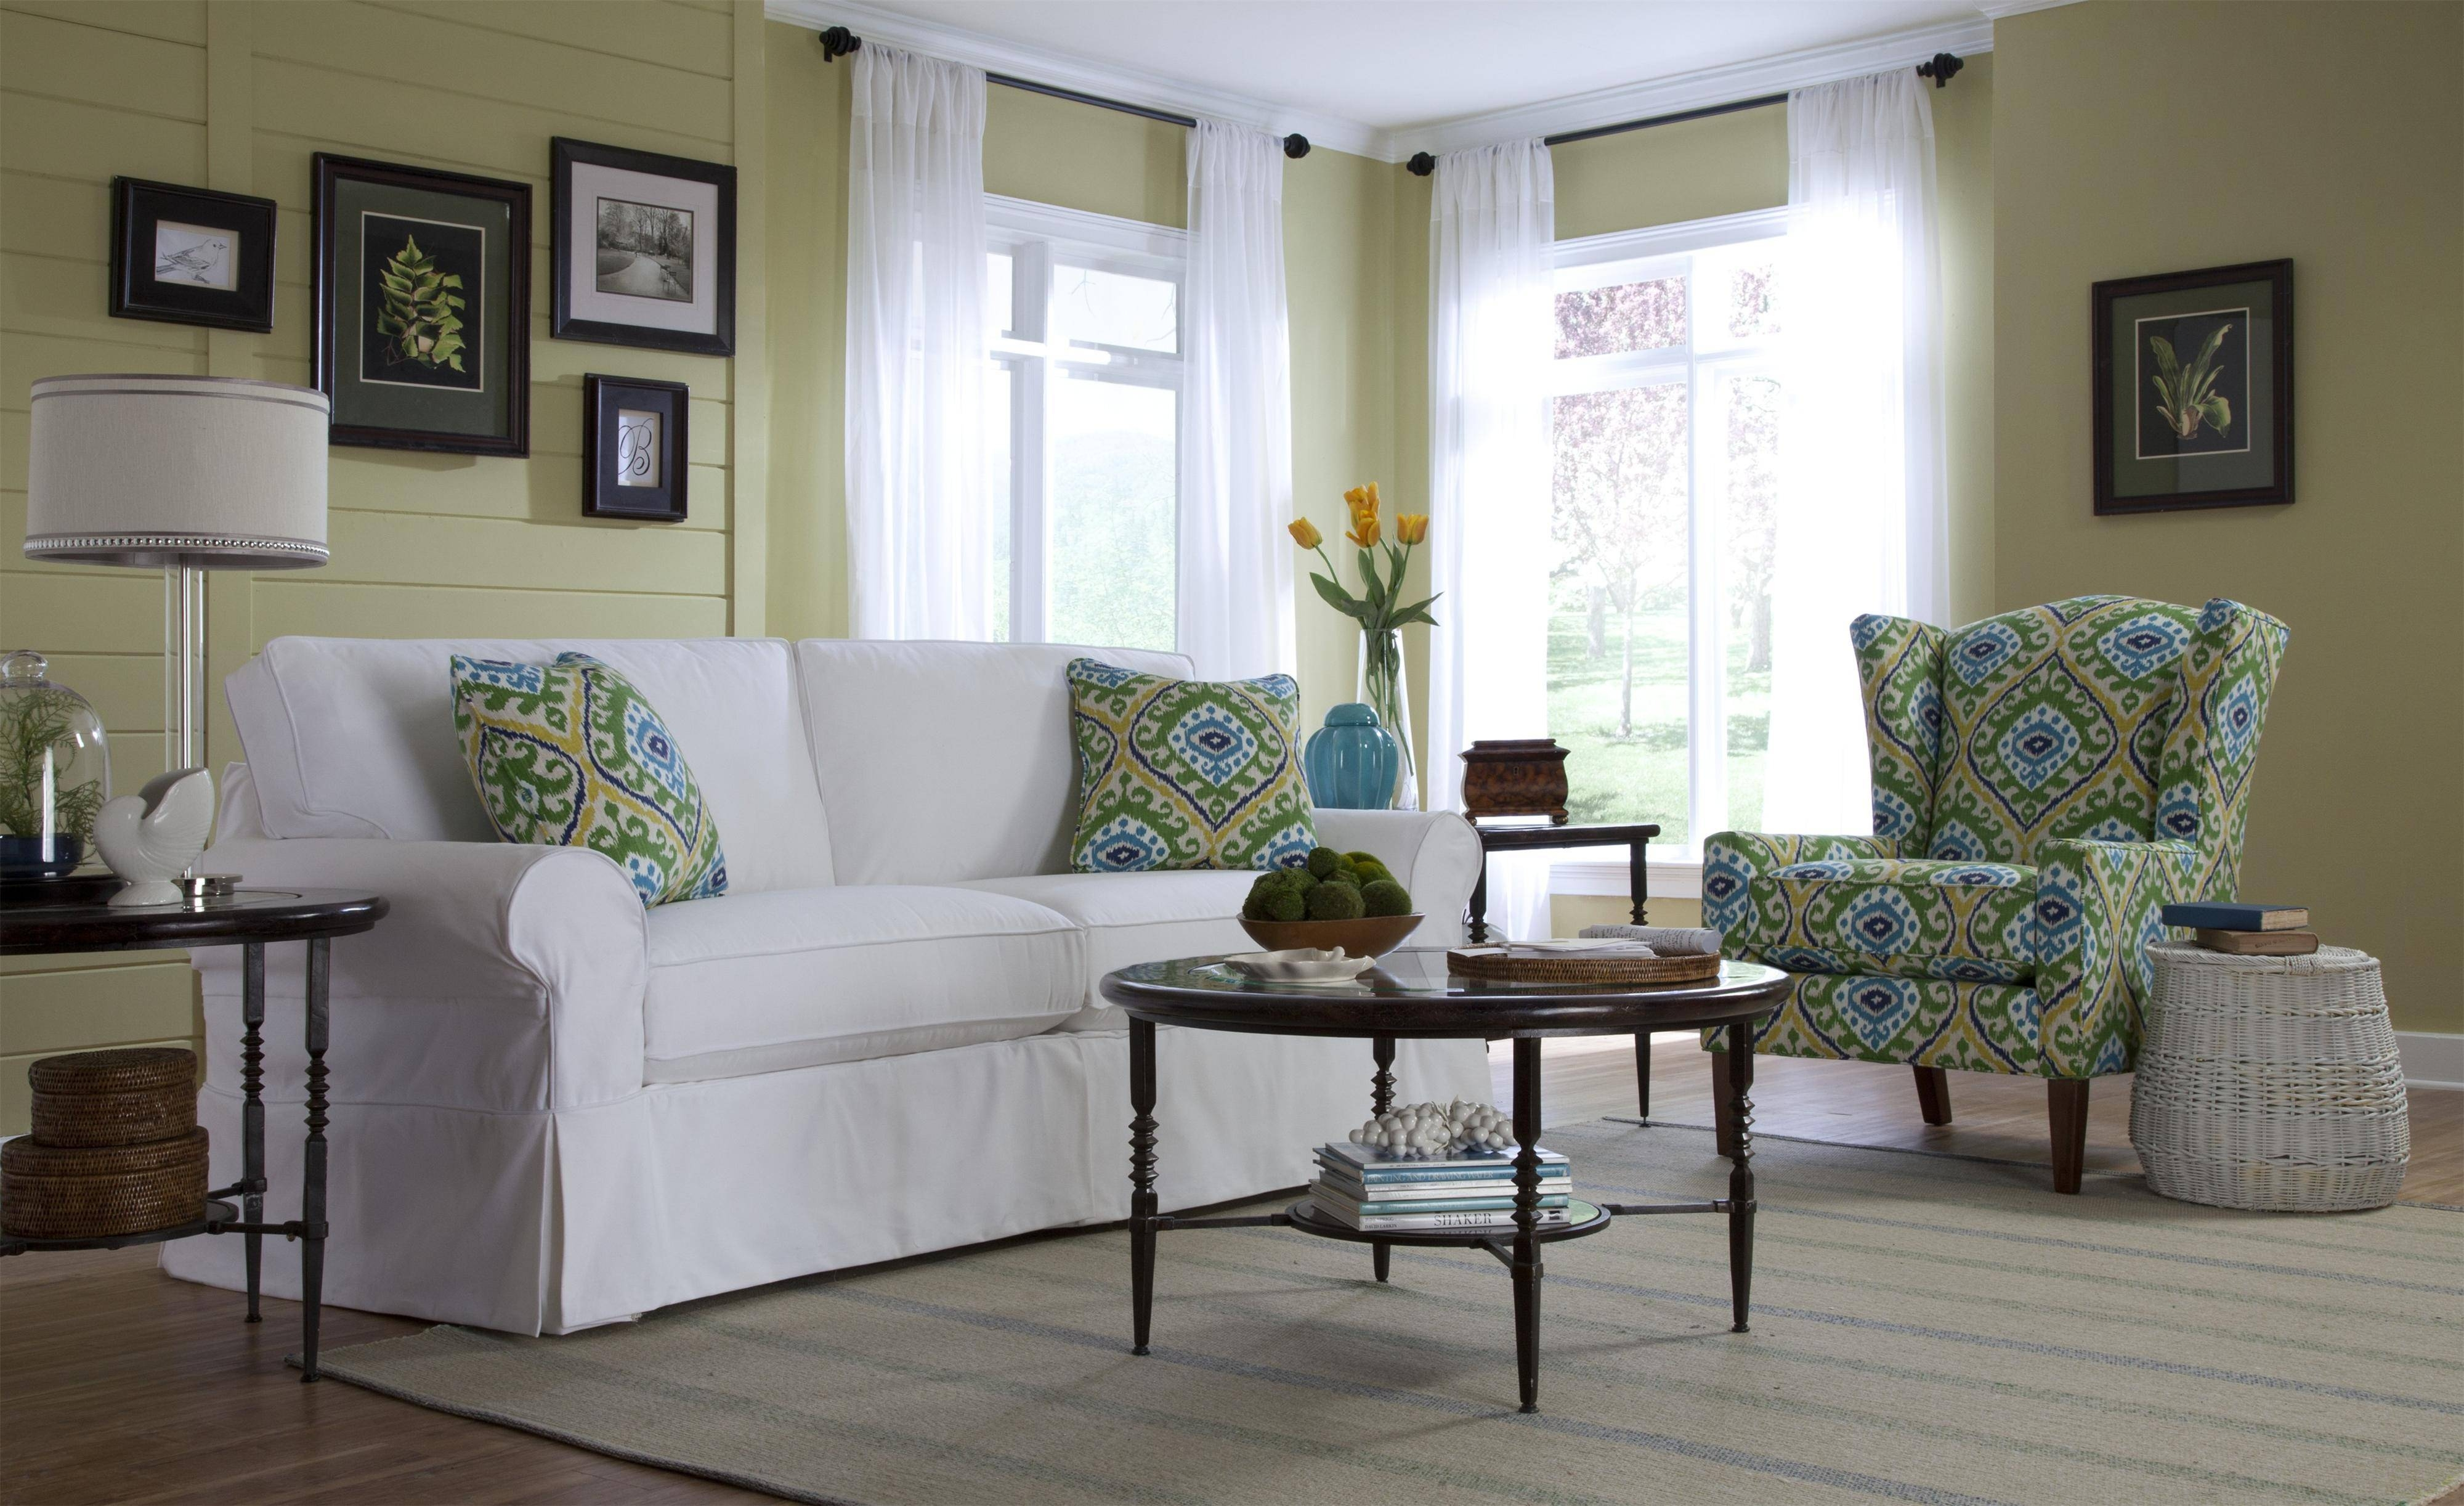 Cottage Style Sofa Slipcovers | Tehranmix Decoration throughout Slipcover Style Sofas (Image 4 of 15)